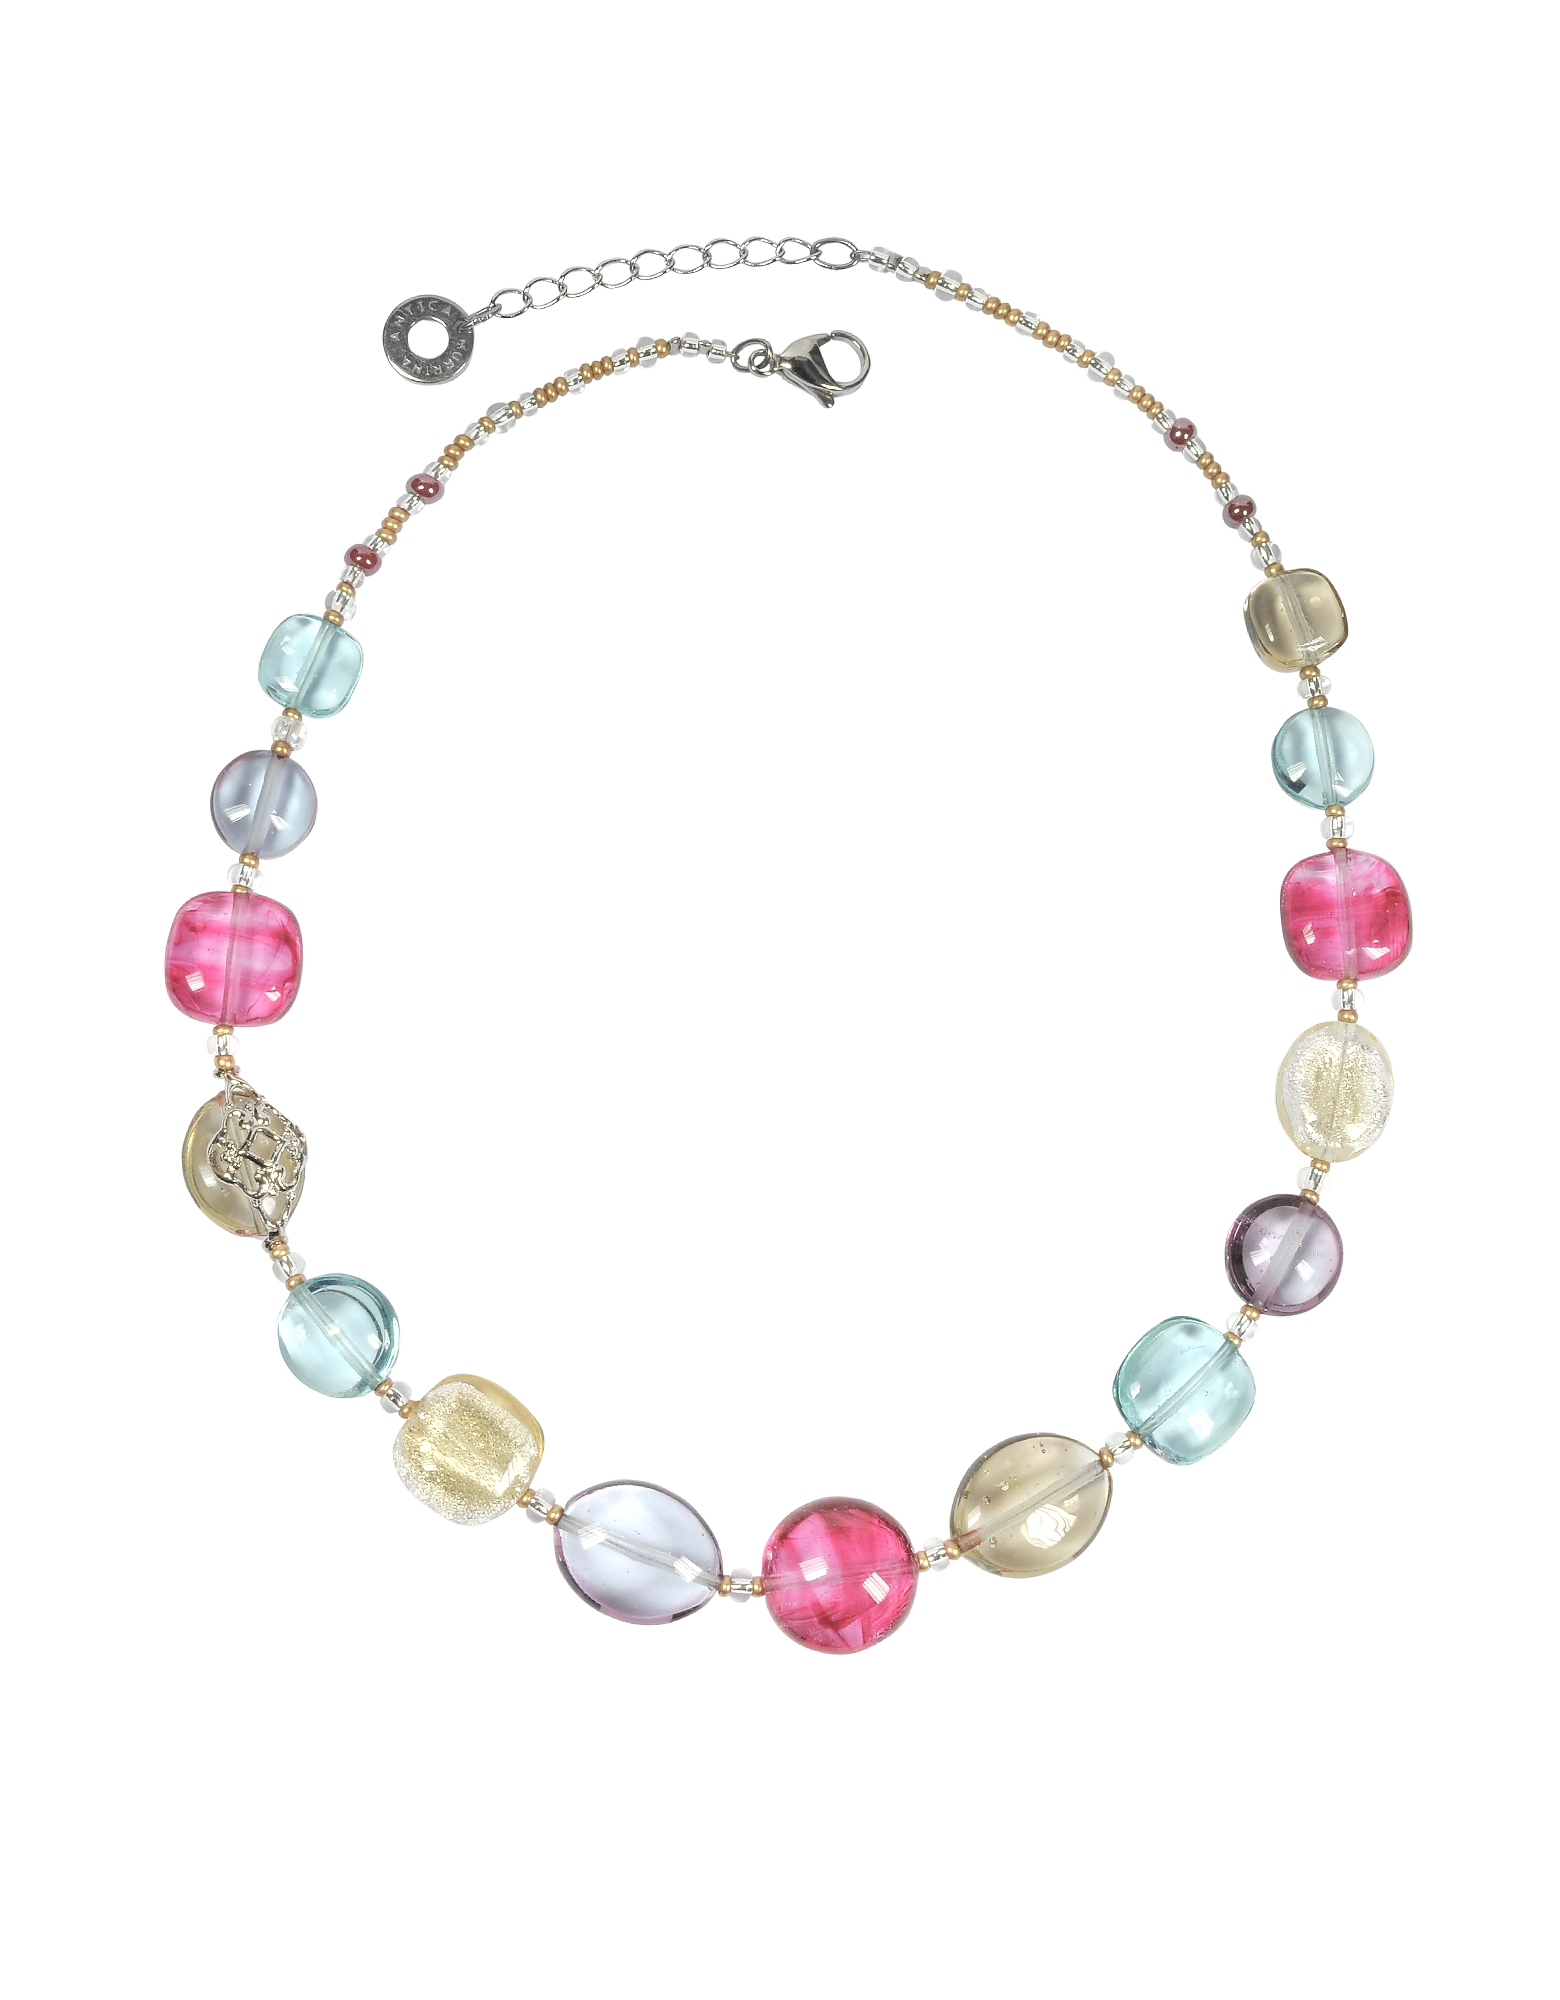 Antica Murrina Necklaces, Florinda Transparent Murano Glass Beads Necklace